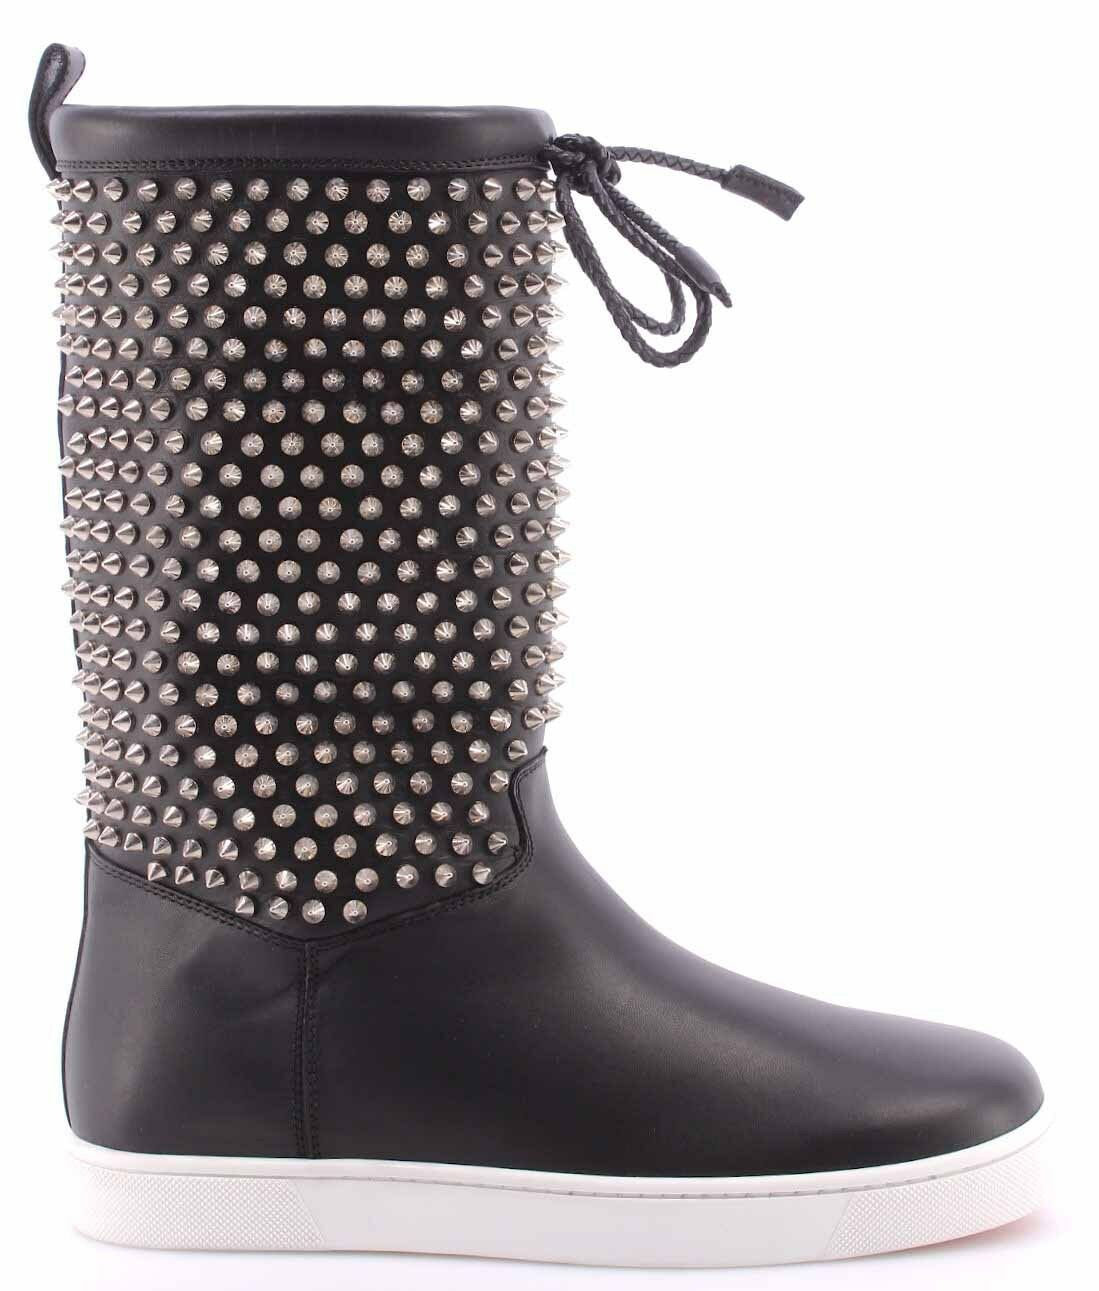 Women's Shoes Boots CHRISTIAN LOUBOUTIN Naza Flat Nappa Shearl Spikes Silver IT